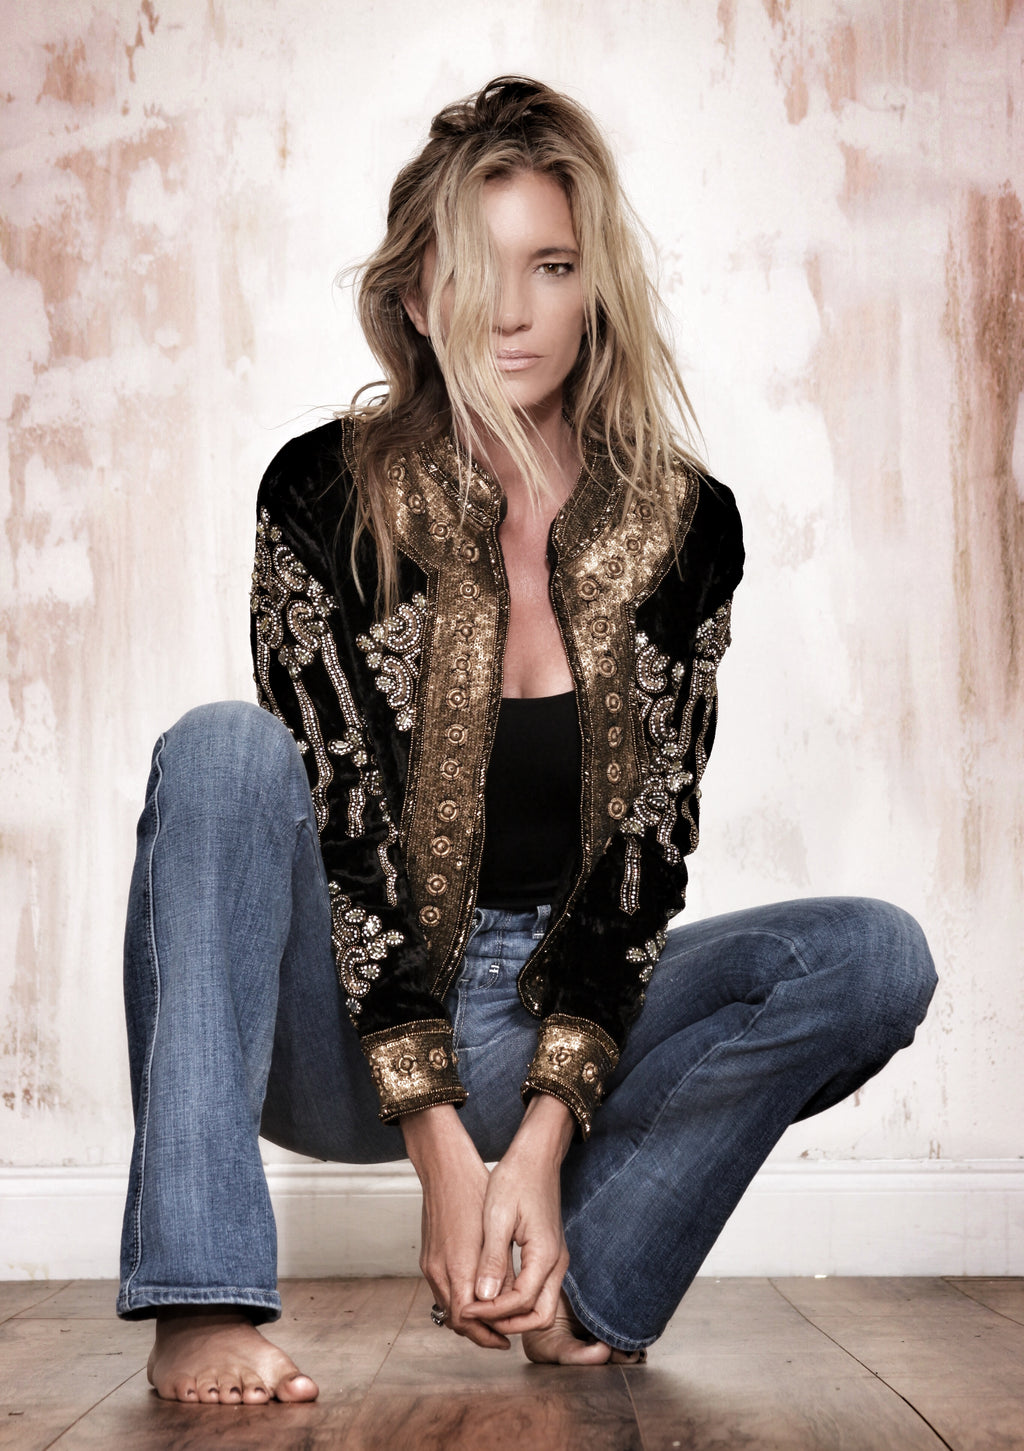 Gisele Black Velvet Beaded Jacket - Ramona LaRue